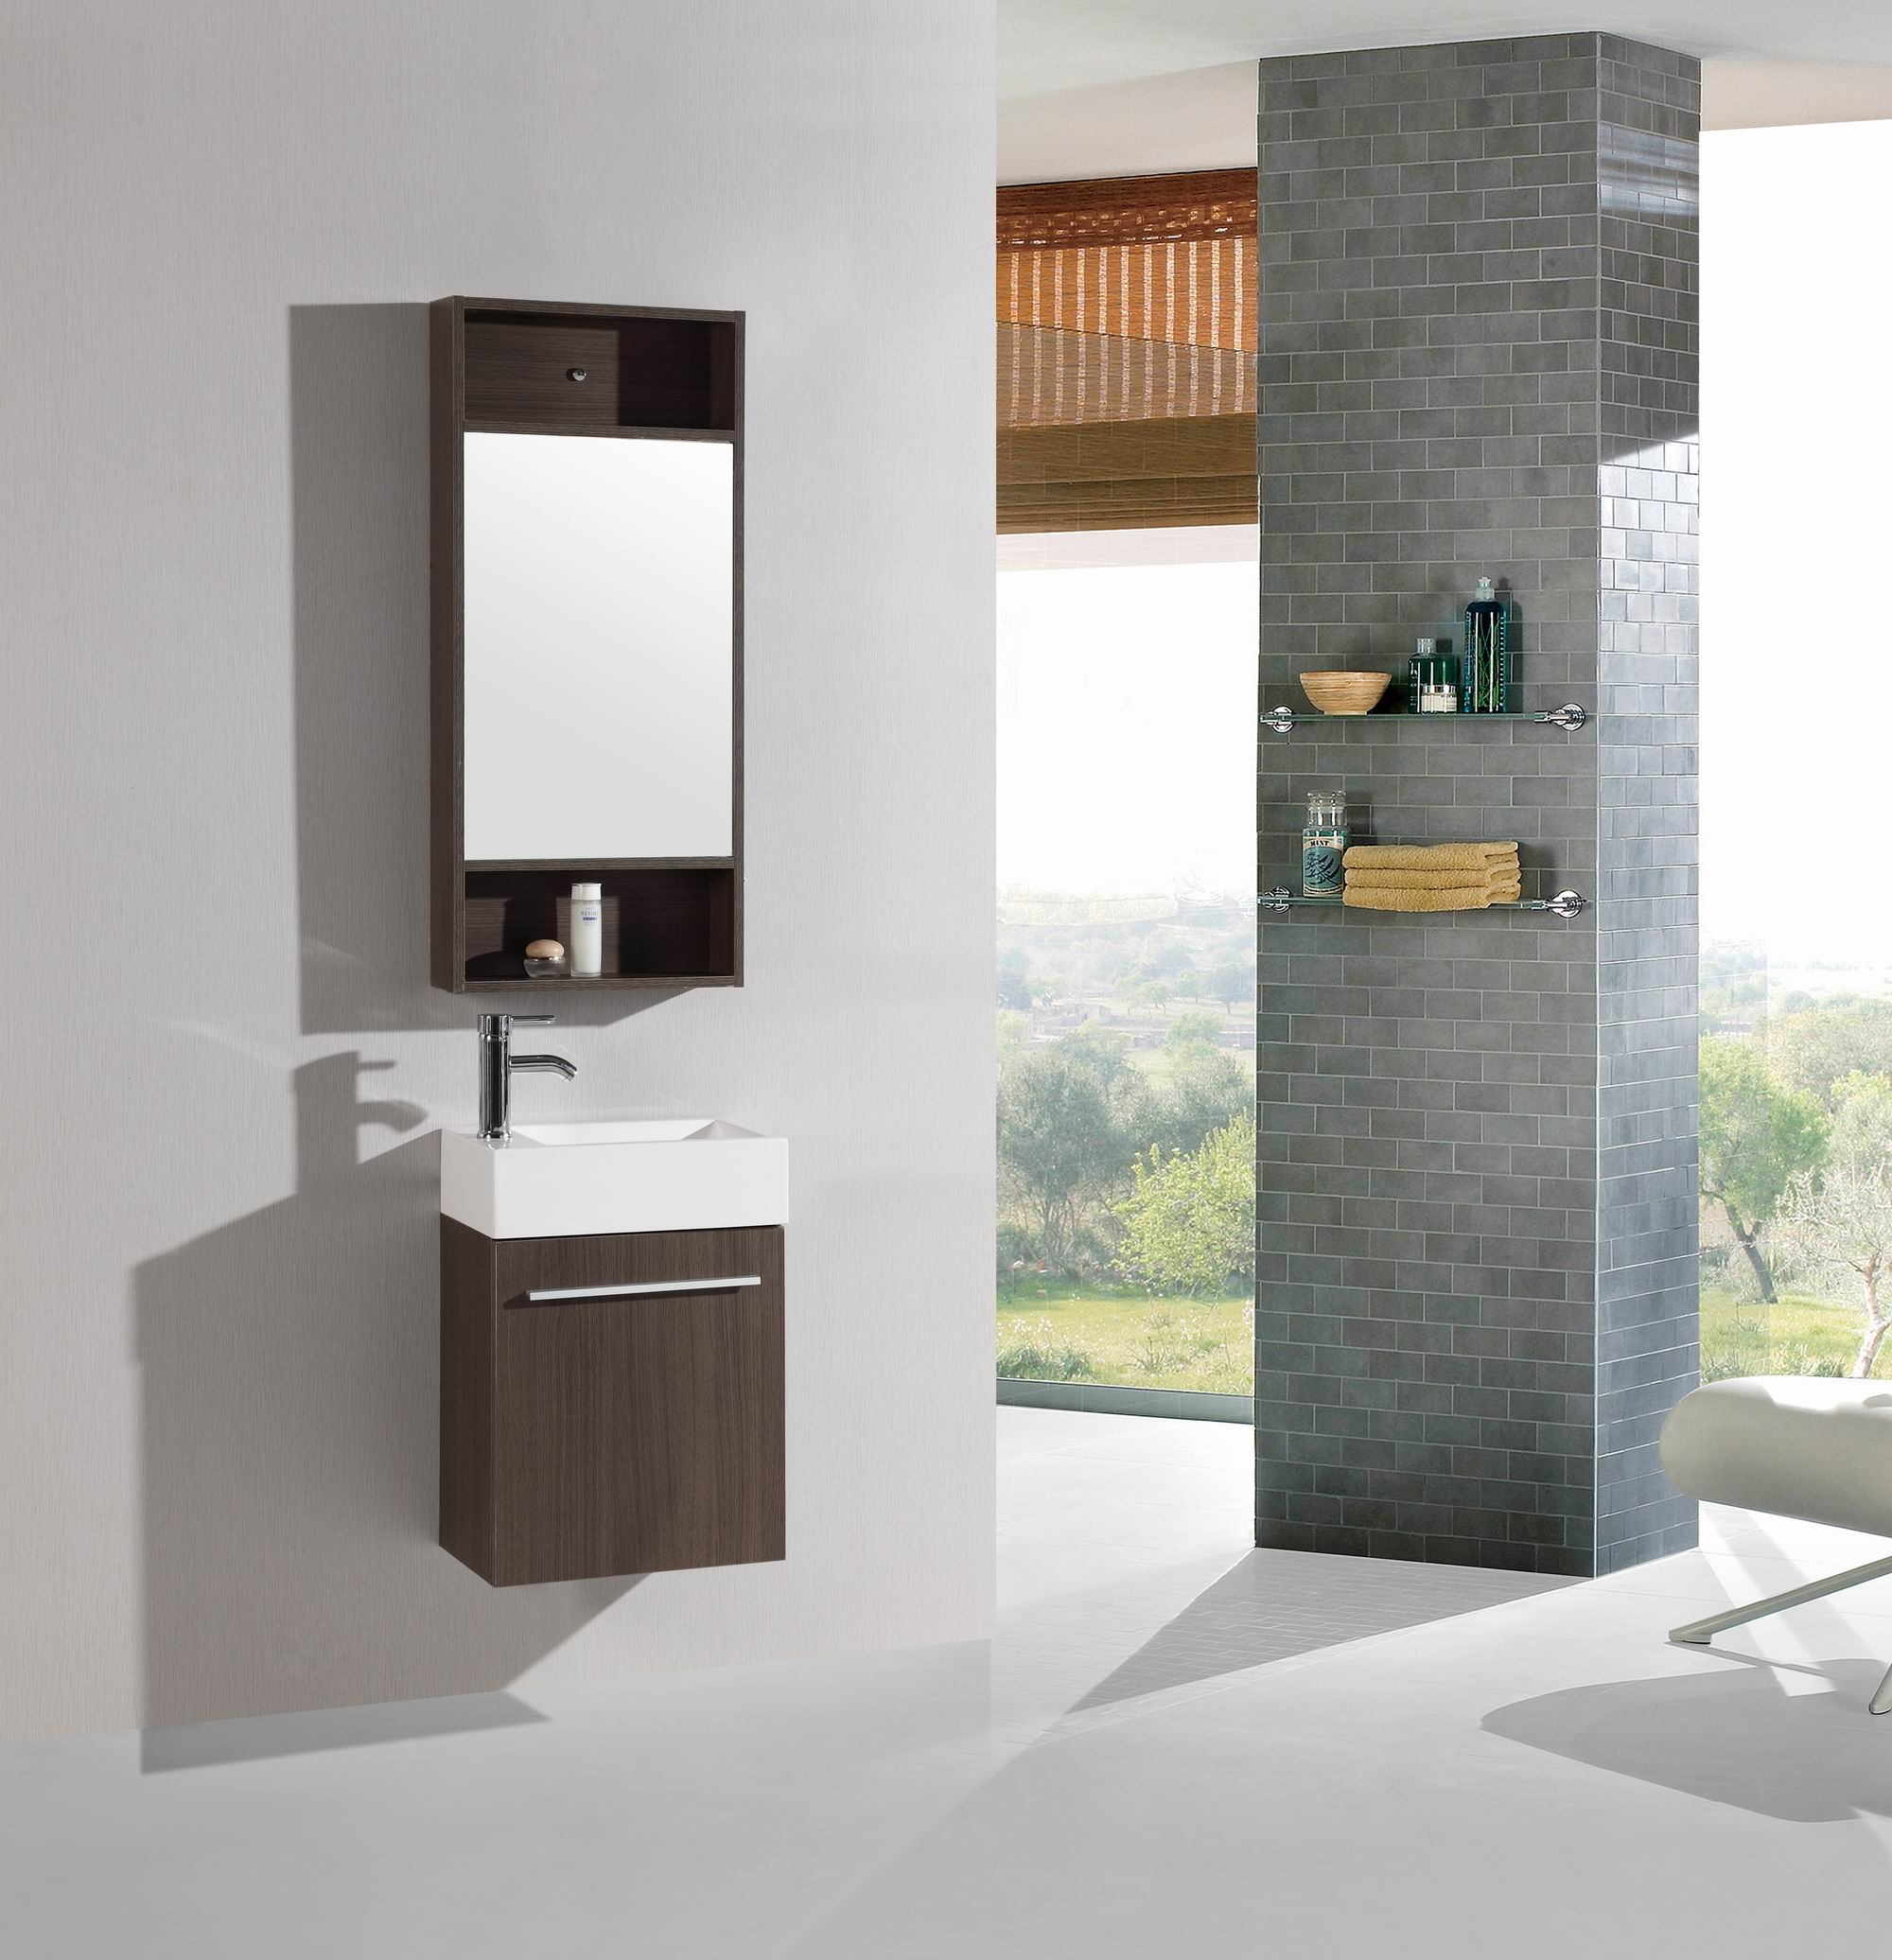 wall inch vanity linen faucet bathroom single wood cabinet sink mounted mirror white integral jet product include espresso